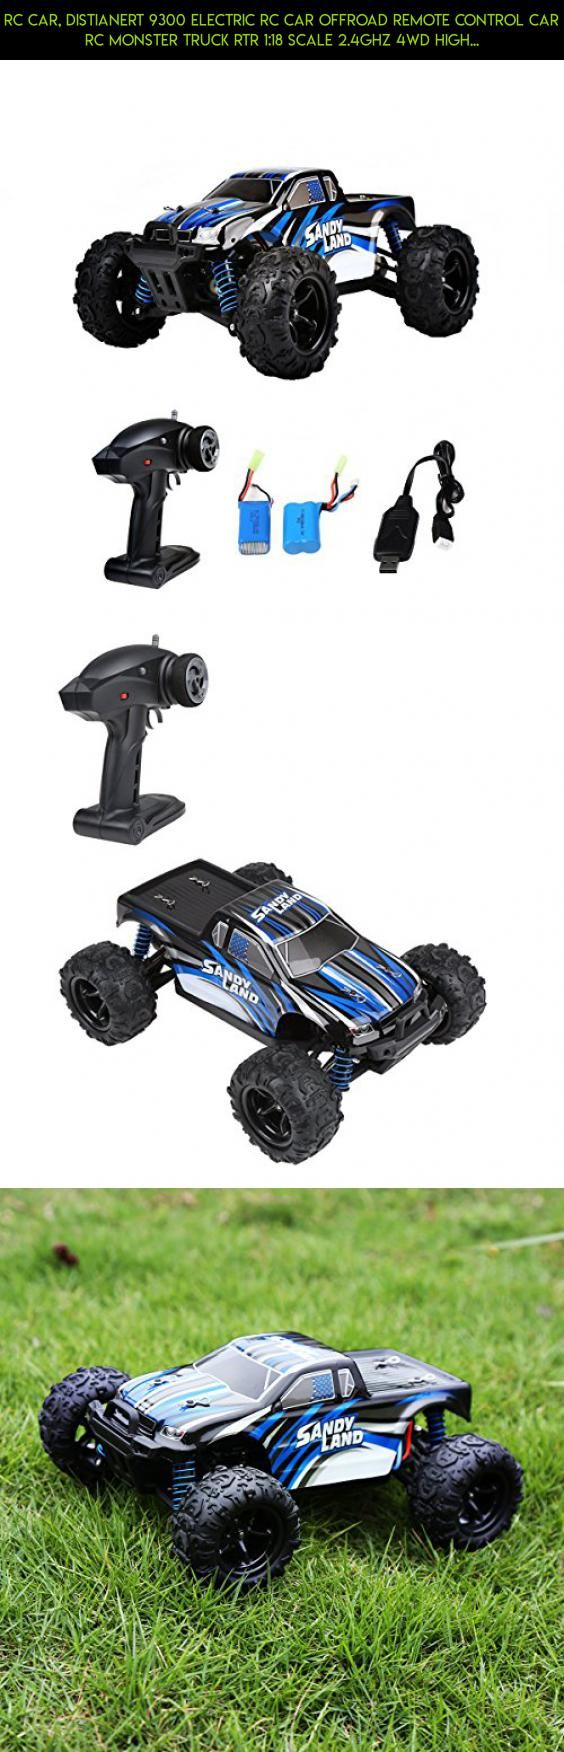 RC Car, Distianert 9300 Electric RC Car Offroad Remote Control Car RC Monster Truck RTR 1:18 Scale 2.4Ghz 4WD High Speed 30MPH with 2 Rechargeable Batteries #products #tech #drone #cars #kit #gadgets #shopping #parts #fpv #traxxas #rc #technology #camera #racing #plans